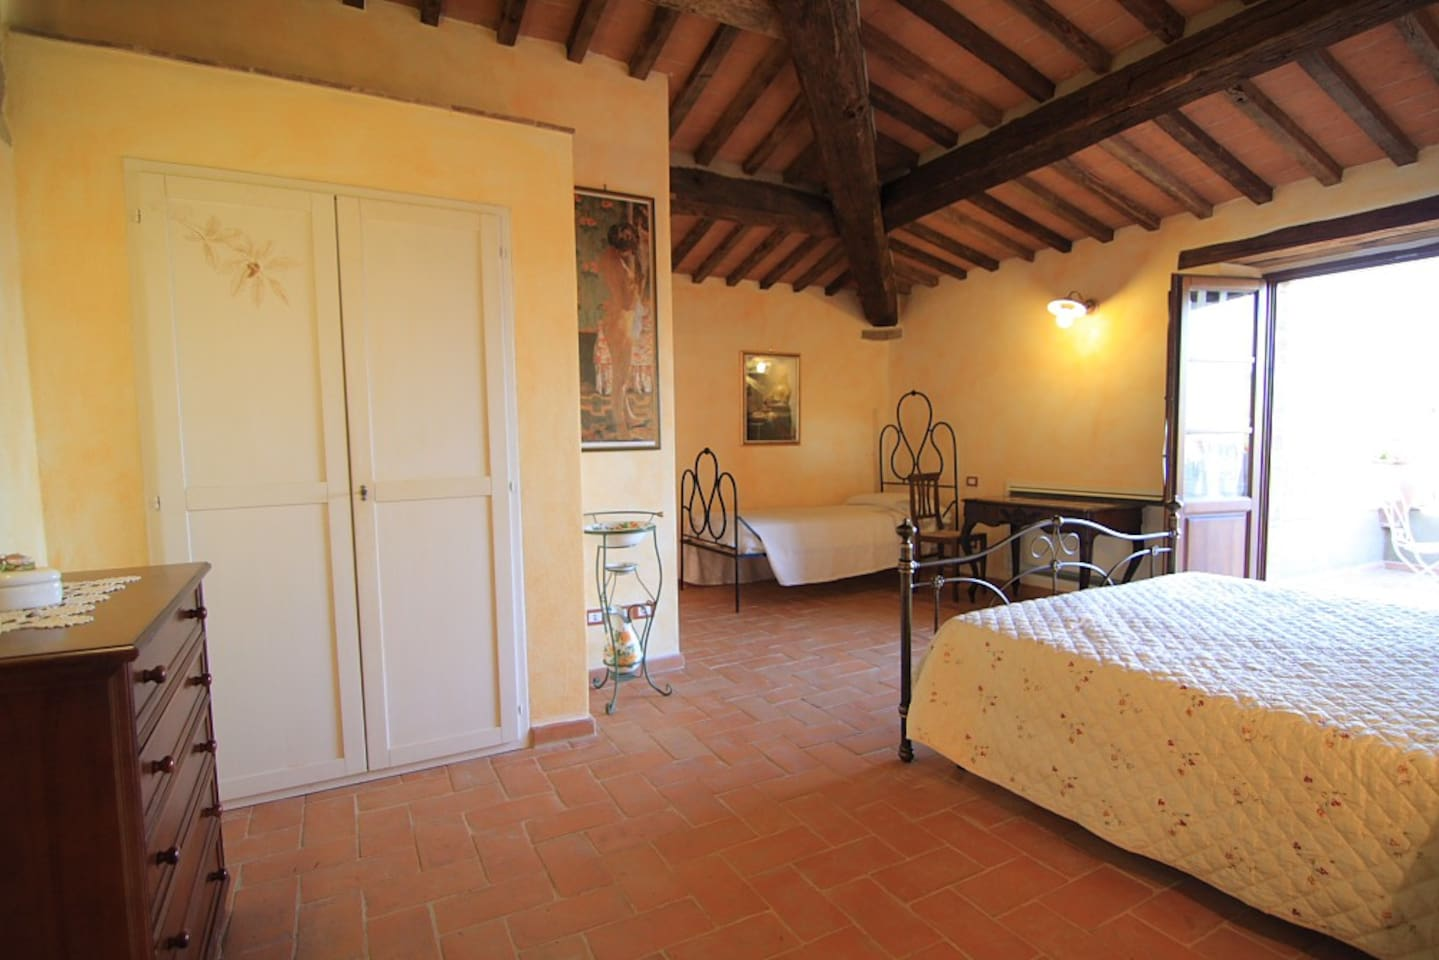 Bedroom on the first floor, with one king size bed and a single bed. Exit to the panoramic terrace